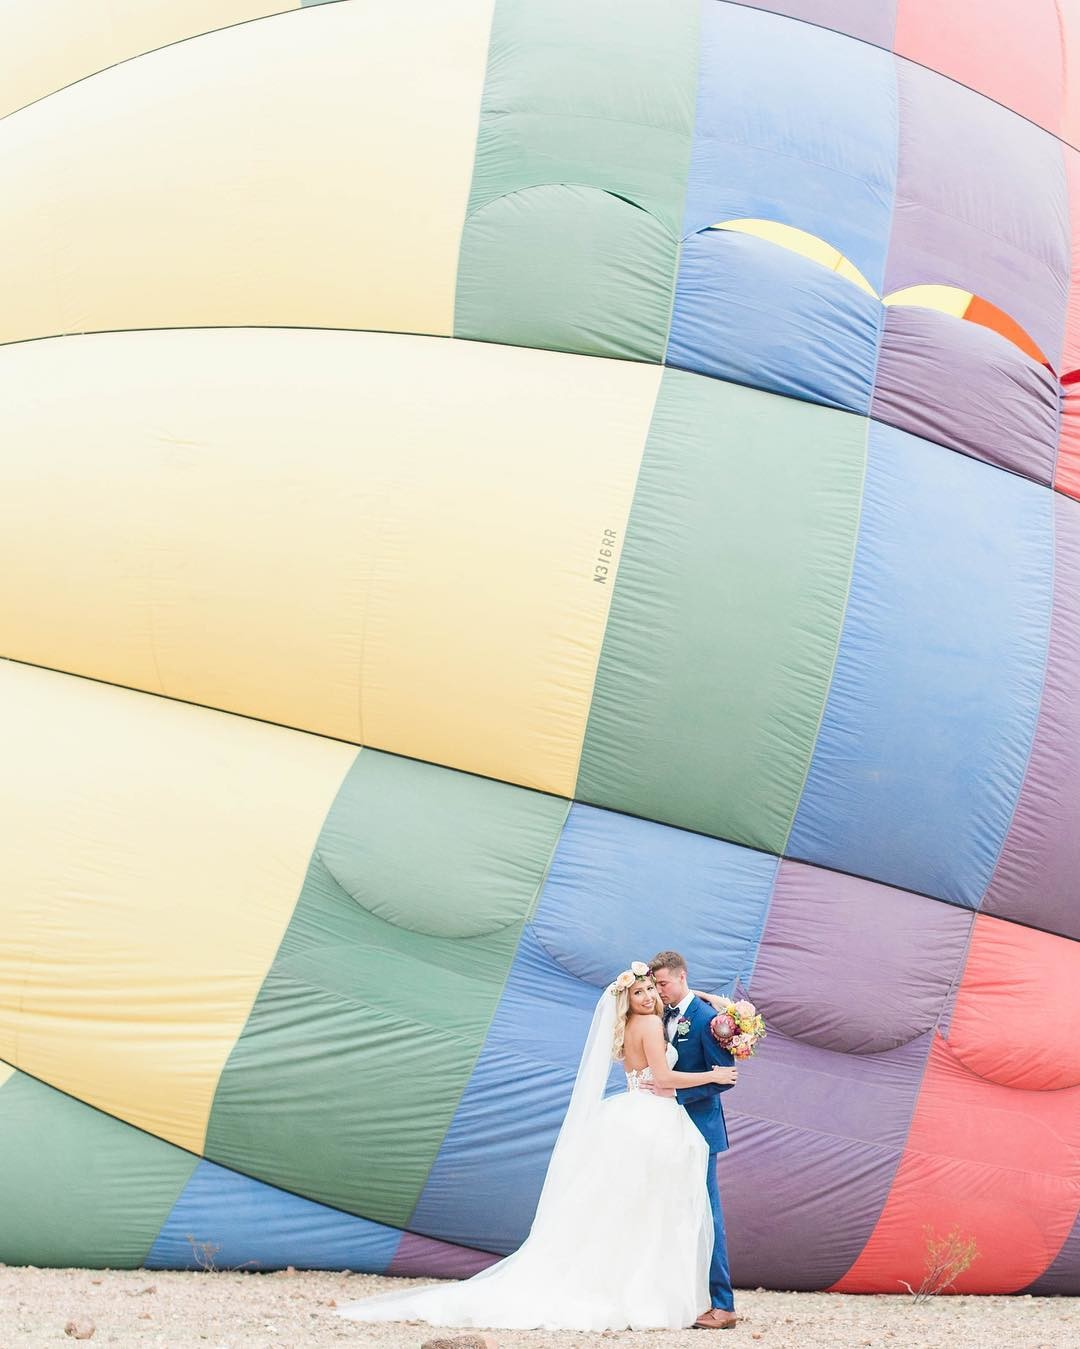 Handsdown the best way to elope in the desert, is in a HOT AIR BALLOON💗🎈